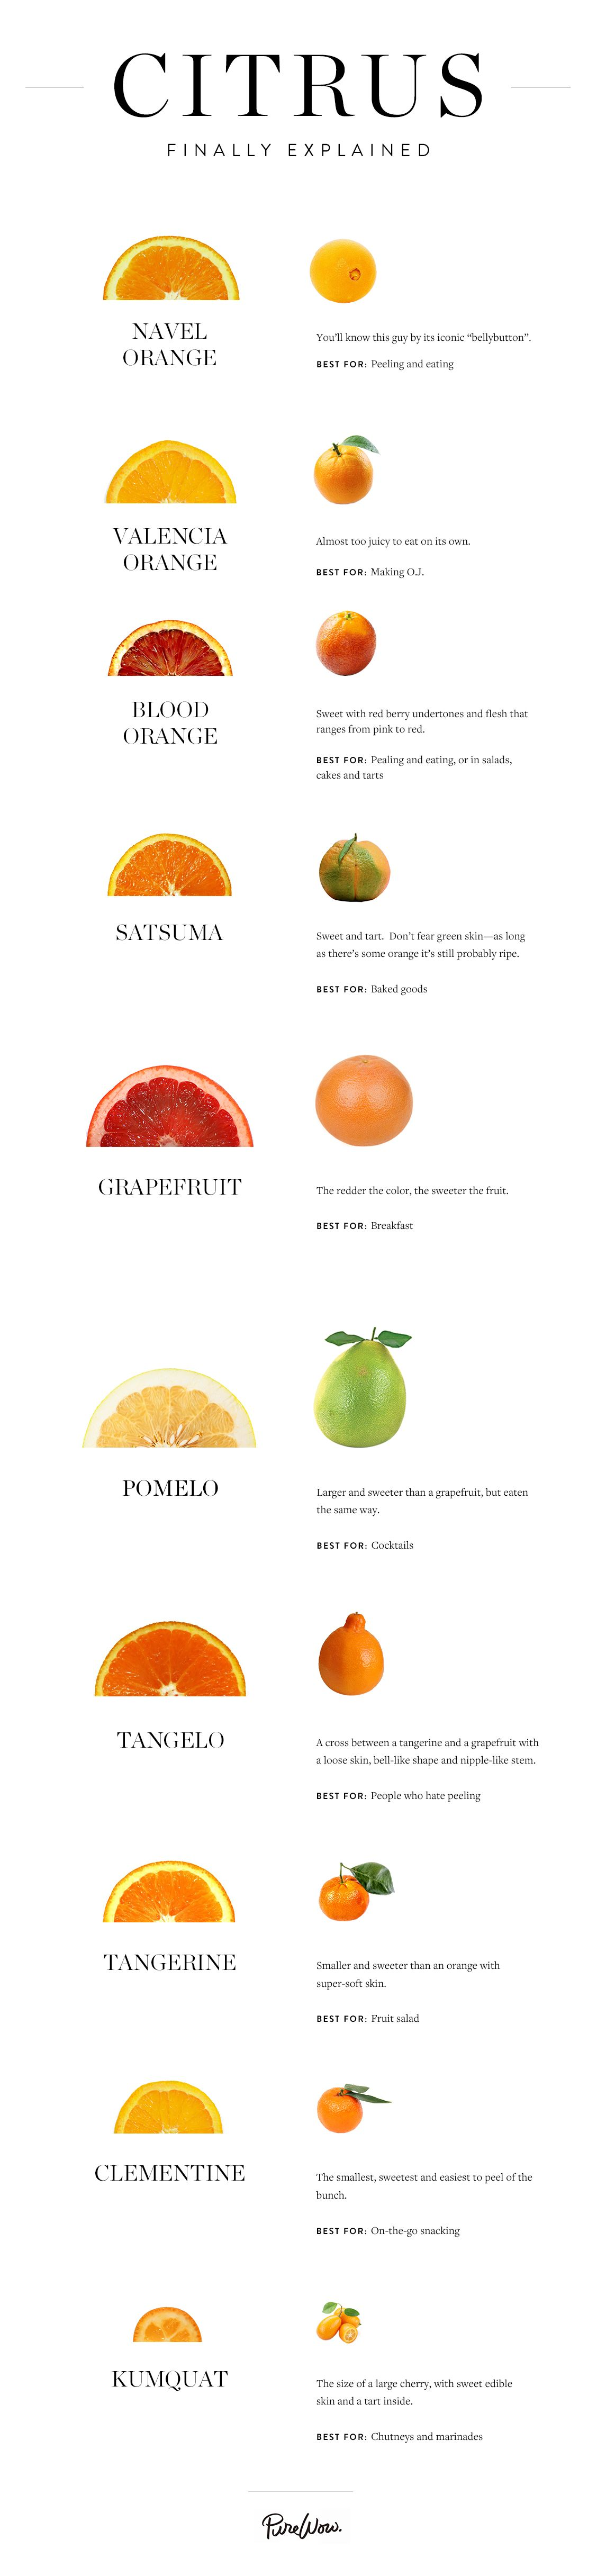 All the Winter Citrus Finally Explained | Healthy Recipes ...